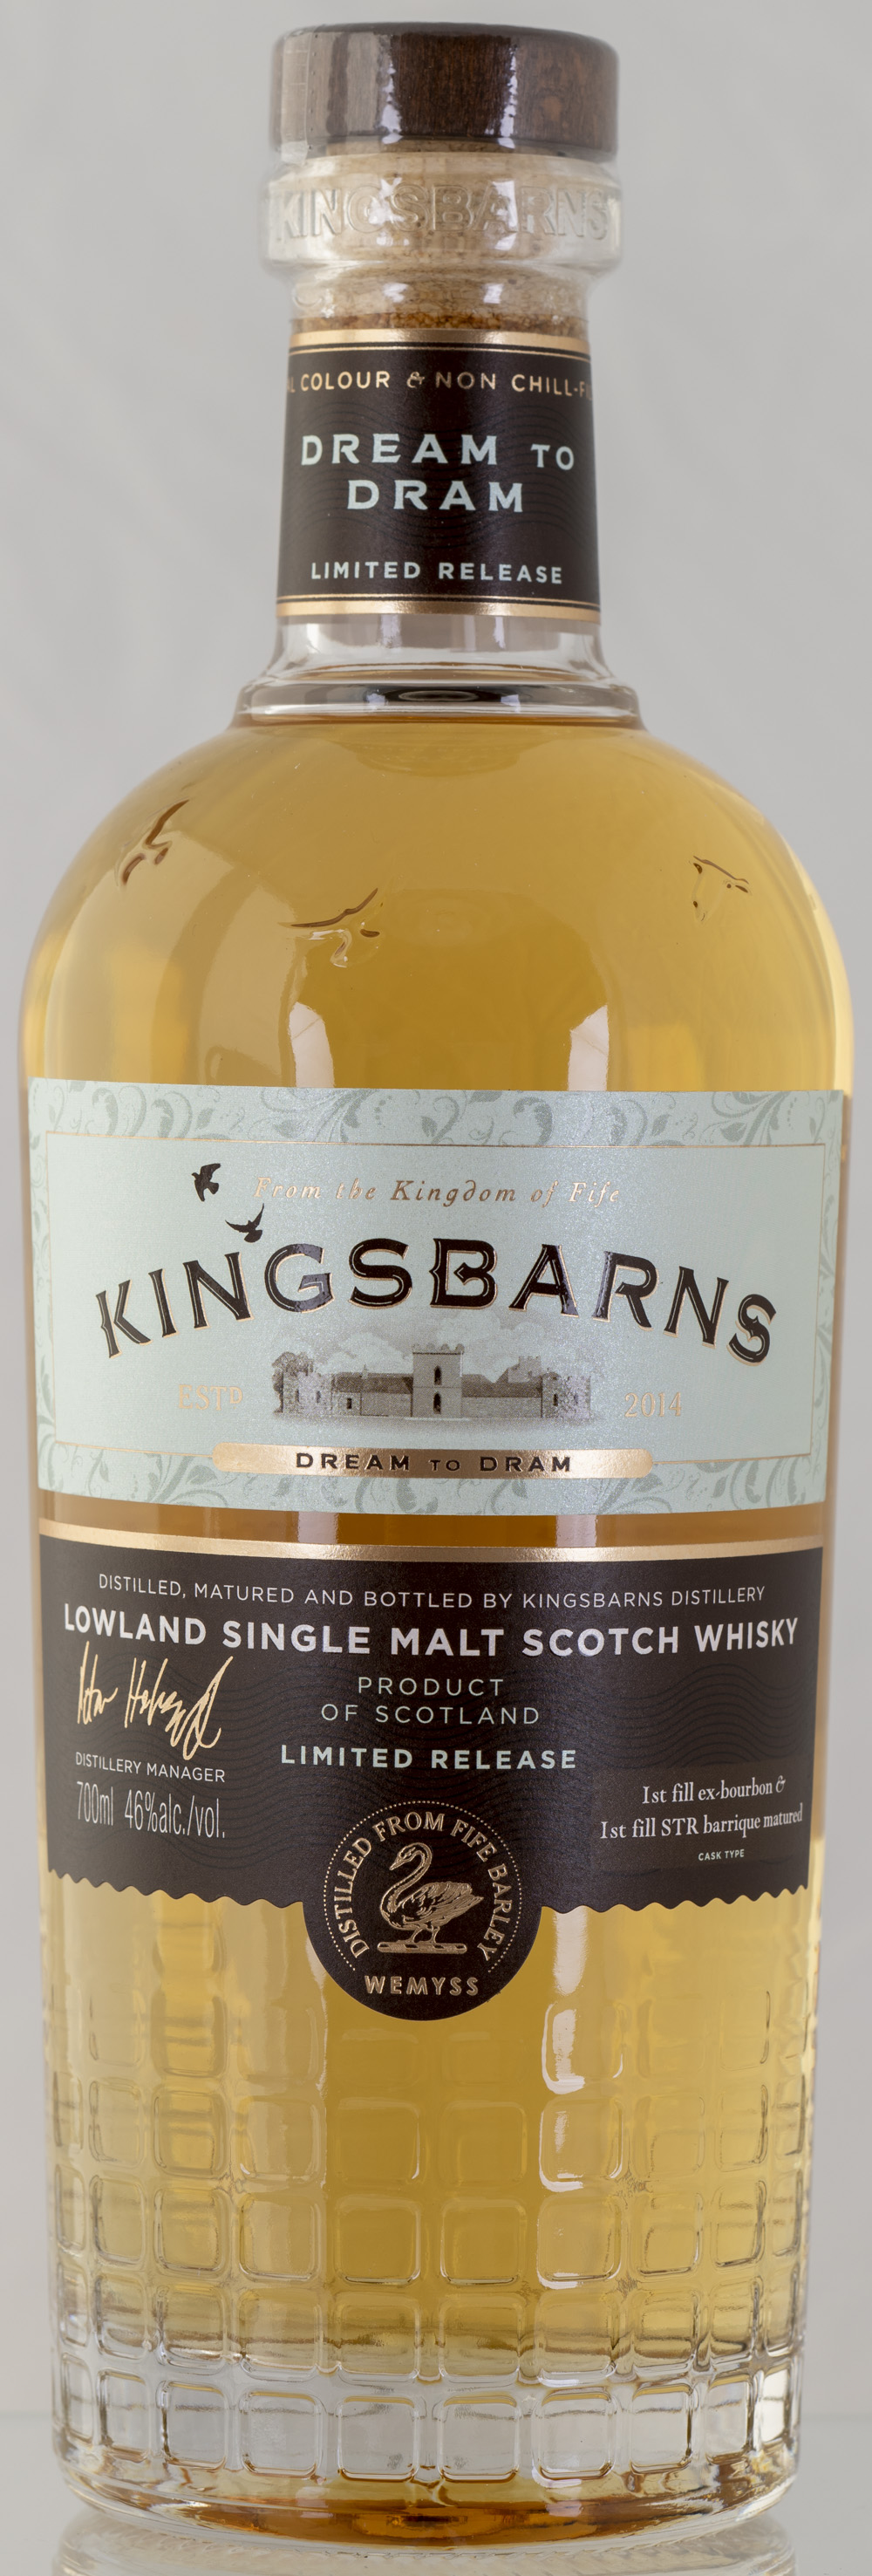 Billede: PHC_2231 - Kingsbarns Dream to Dram - bottle front.jpg